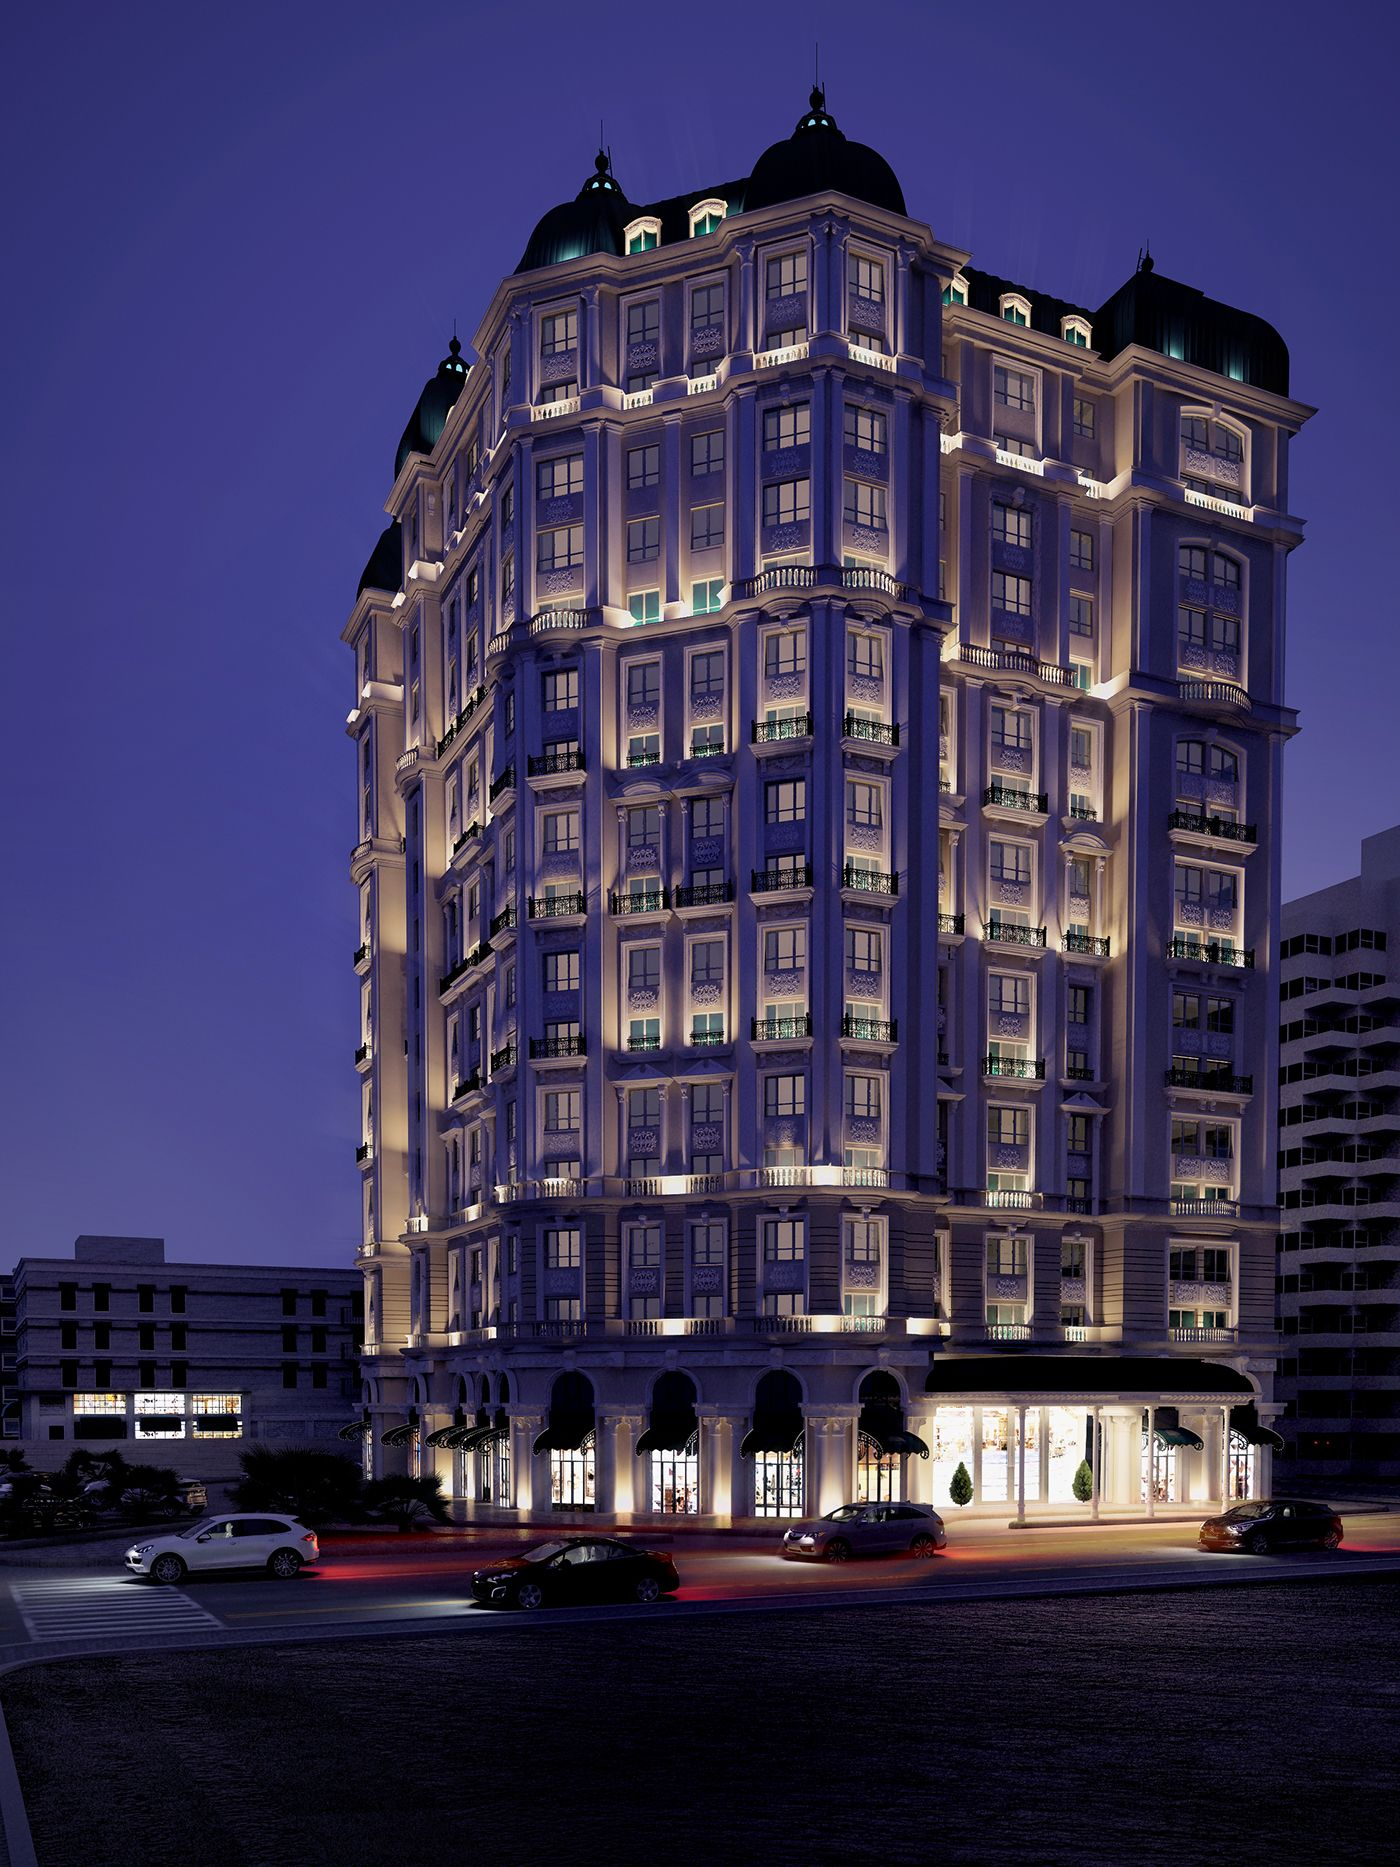 Jeddah Hotel on Behance